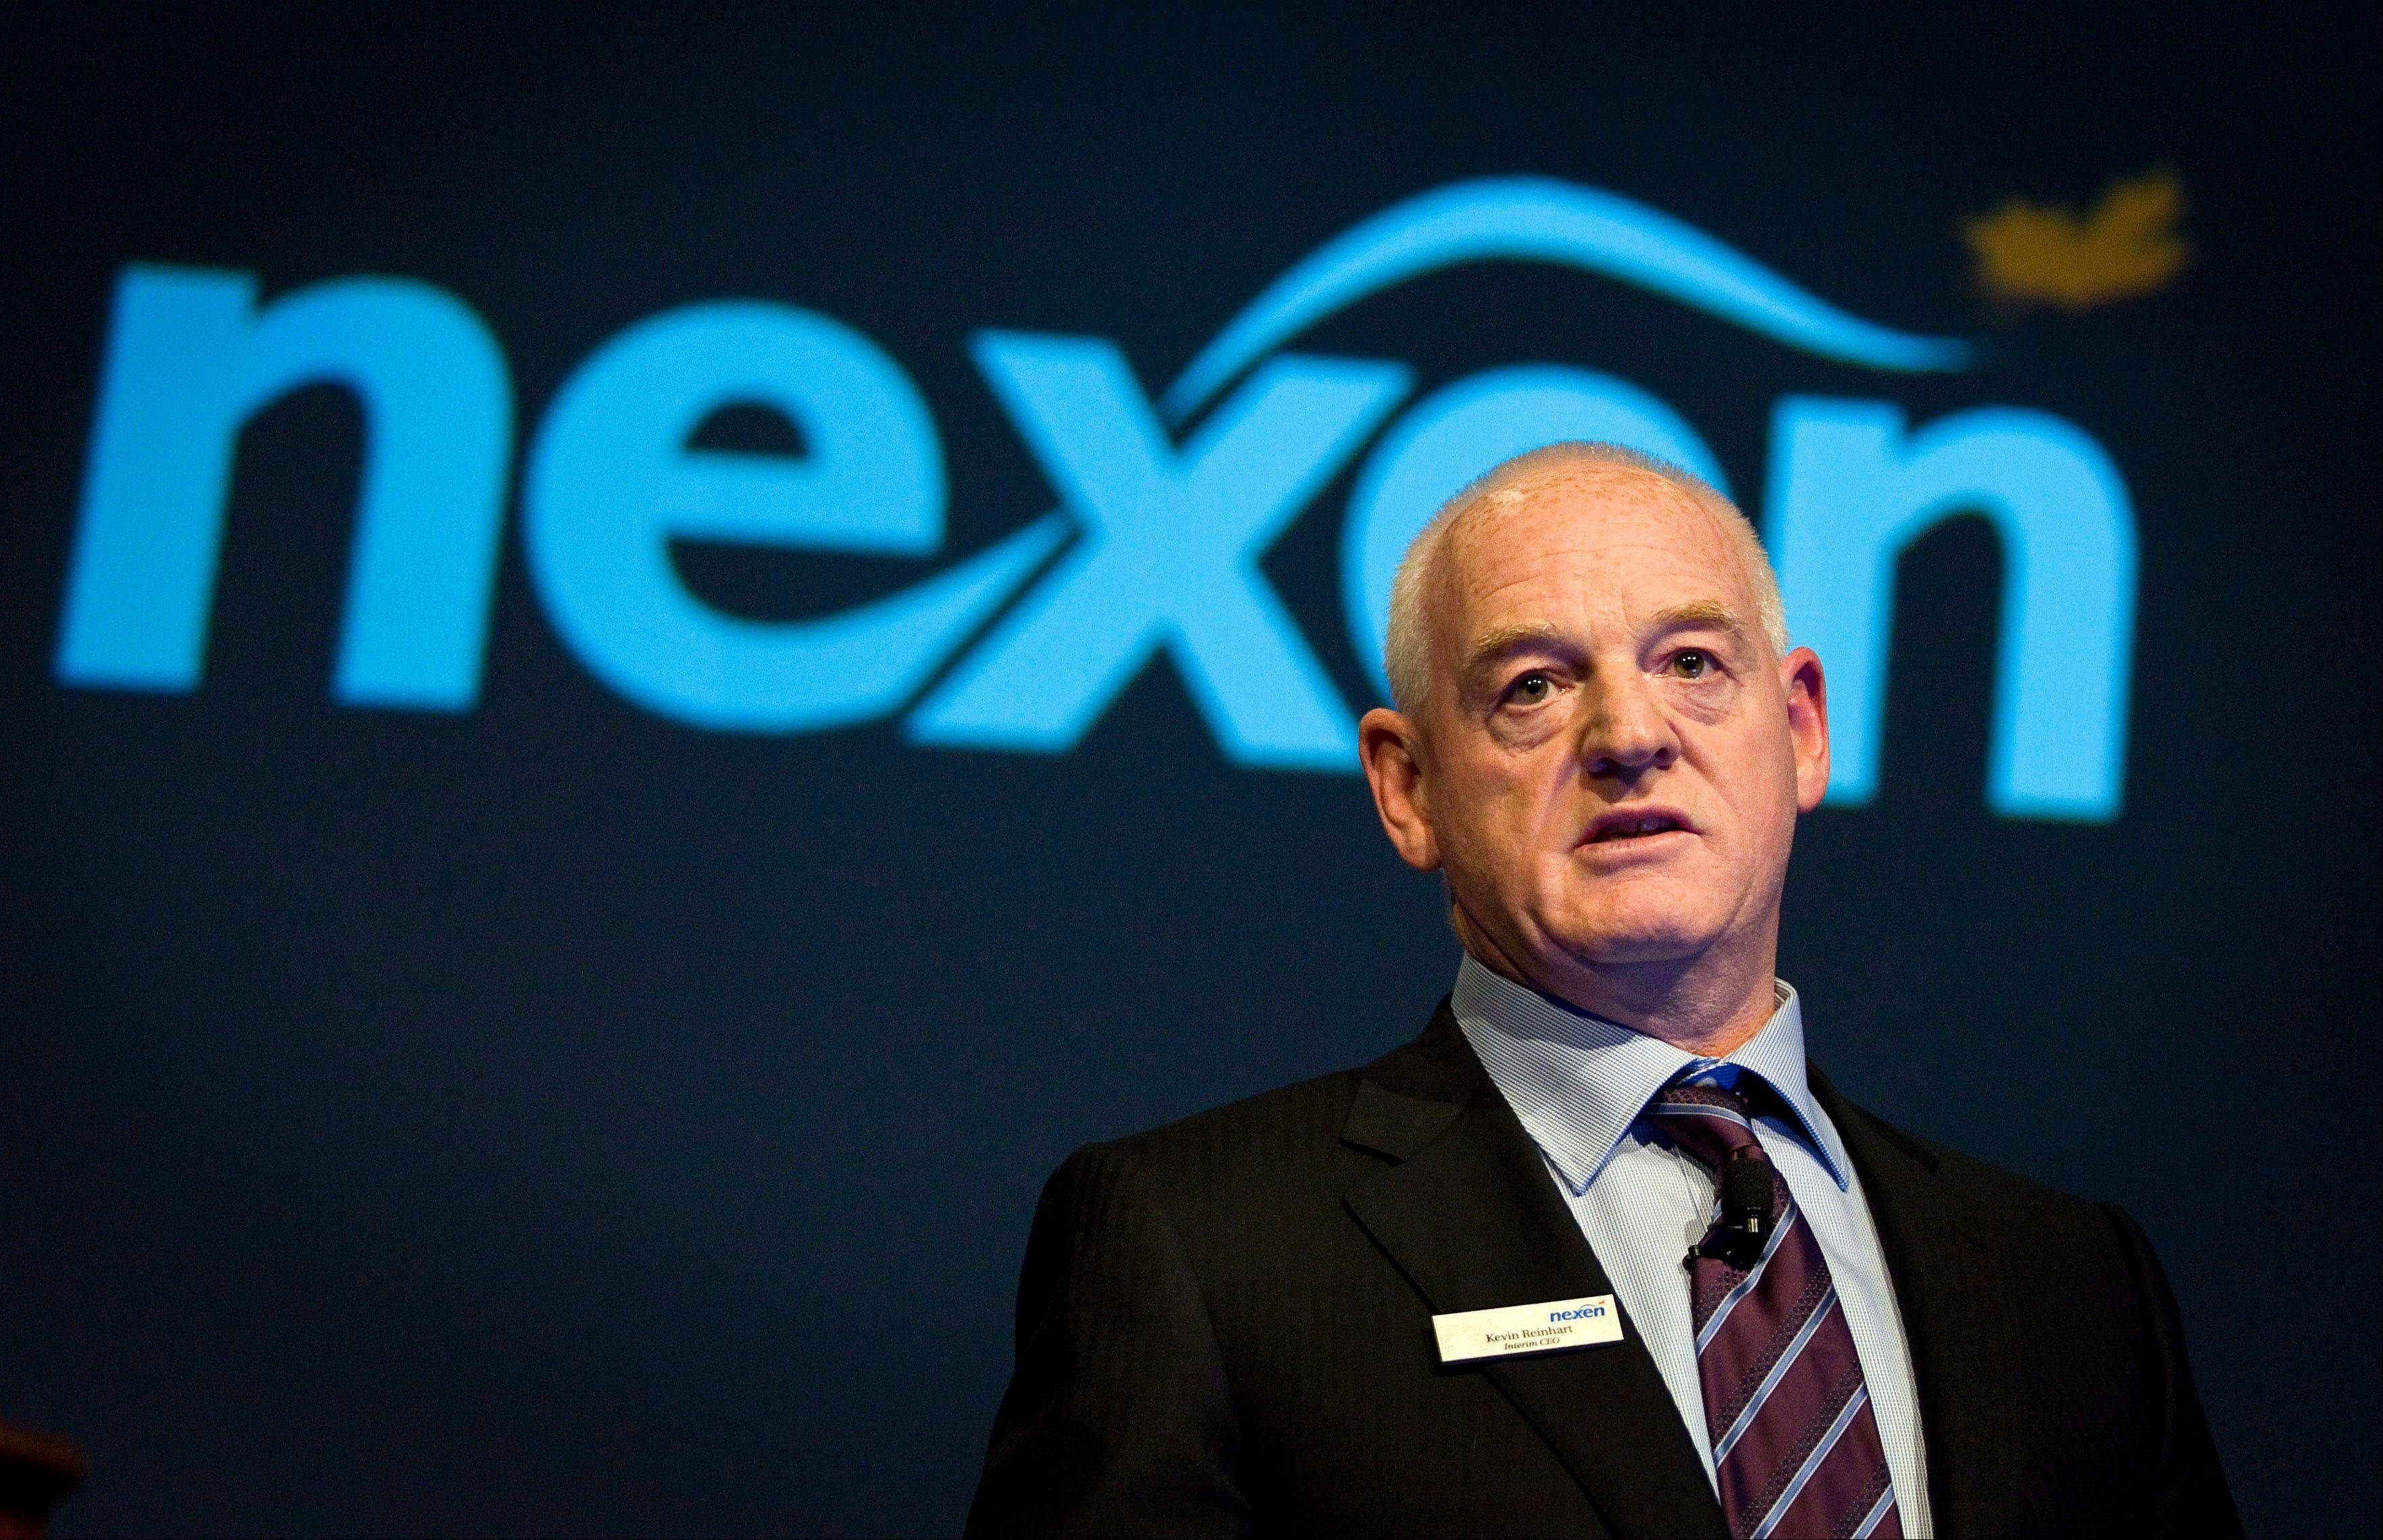 Nexen chief executive Kevin Reinhart addresses the company�s annual meeting in Calgary, Alberta, on April 25. Oil and gas producer Nexen Inc. has agreed to be acquired by China National Offshore Oil Company for $15.1 billion.